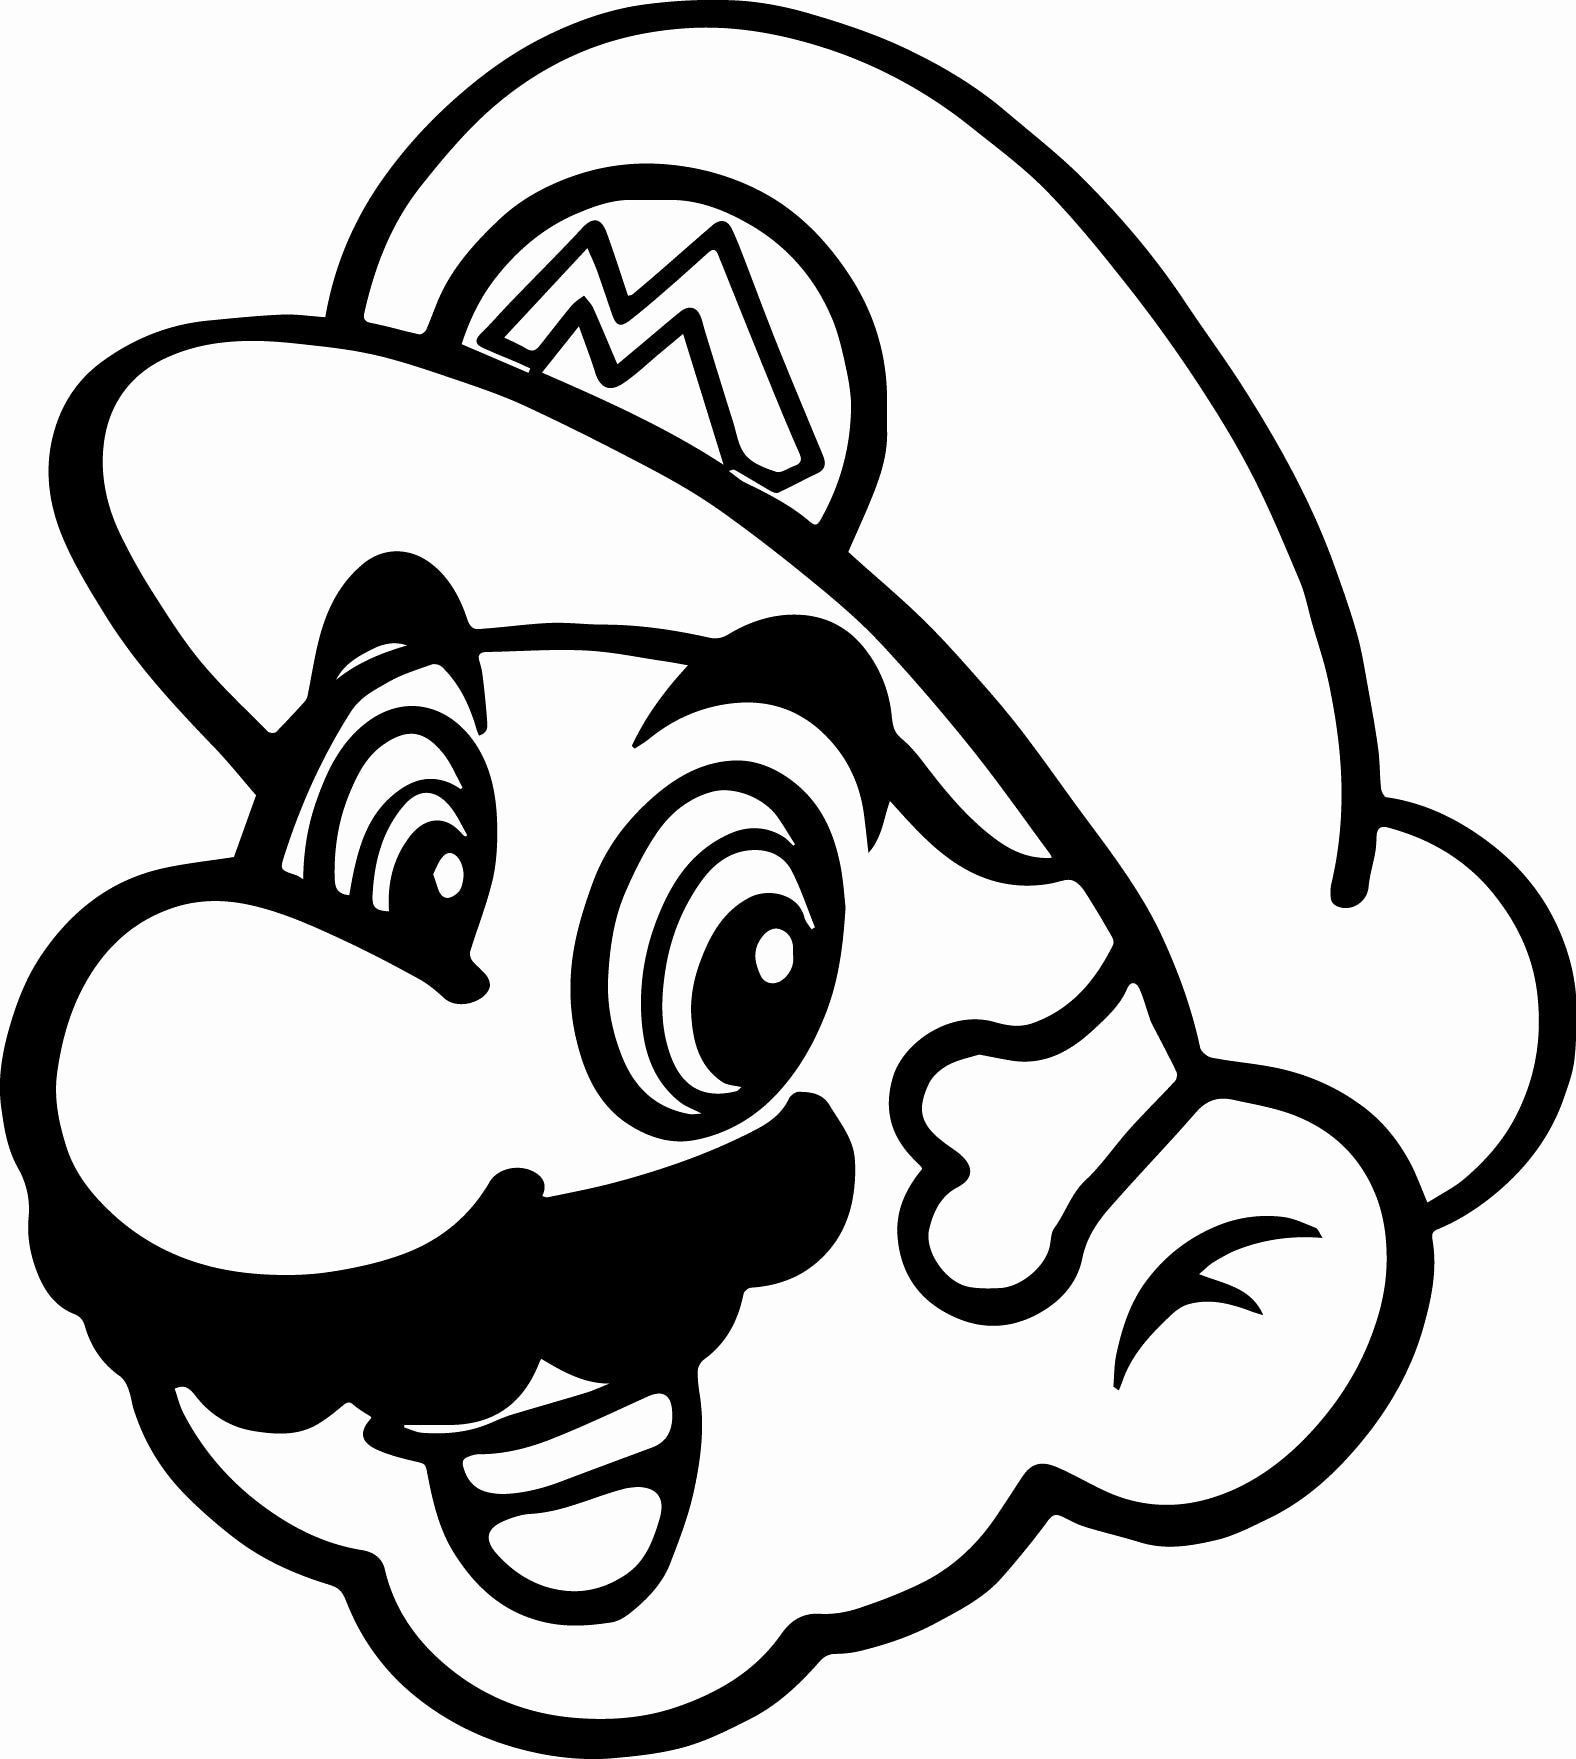 The Anatomy Coloring Pages Inspirational Rar Descargar Coloring Pages Blank Coloring Pages Super Coloring Pages Super Mario Coloring Pages Mario Coloring Pages